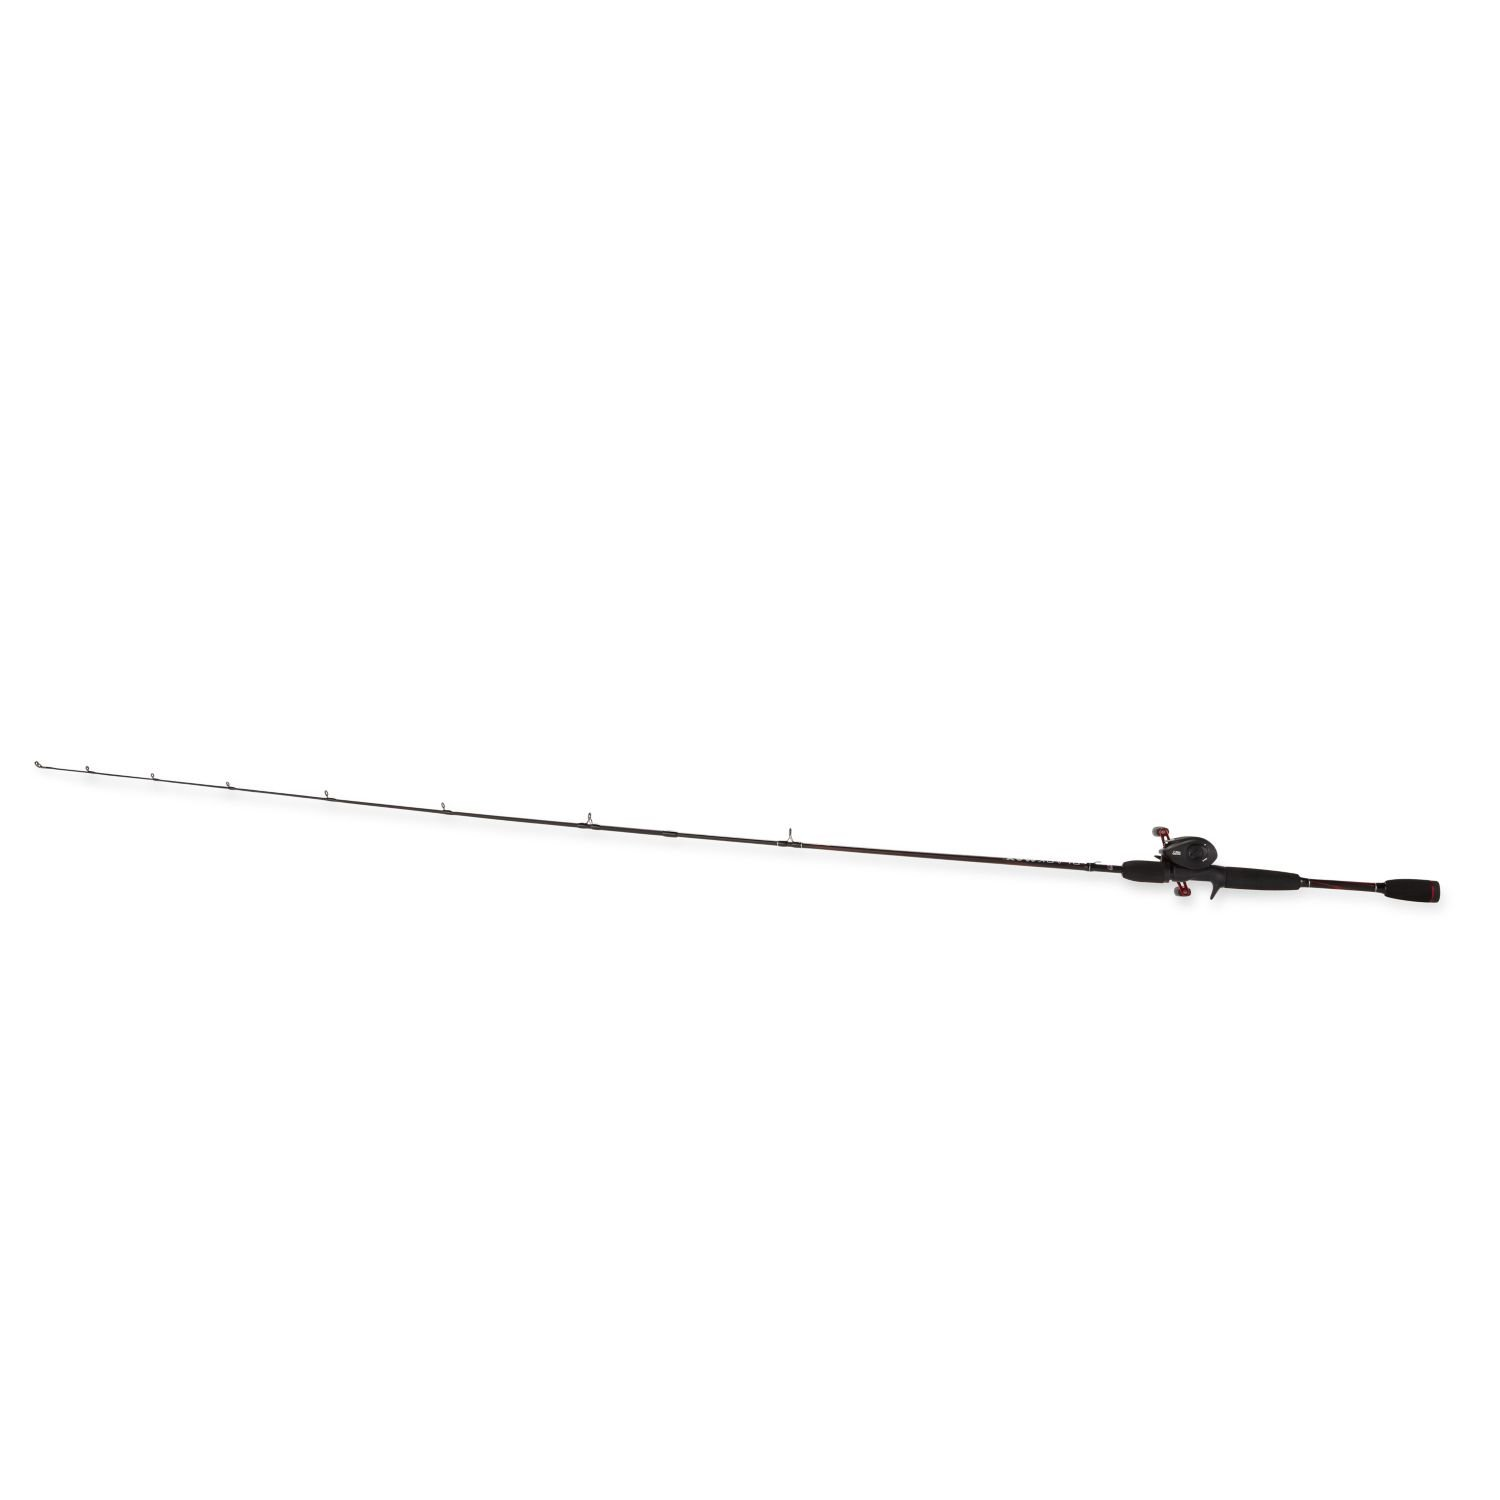 Abu Garcia Baitcasting Fishing Rod and Reel Combo